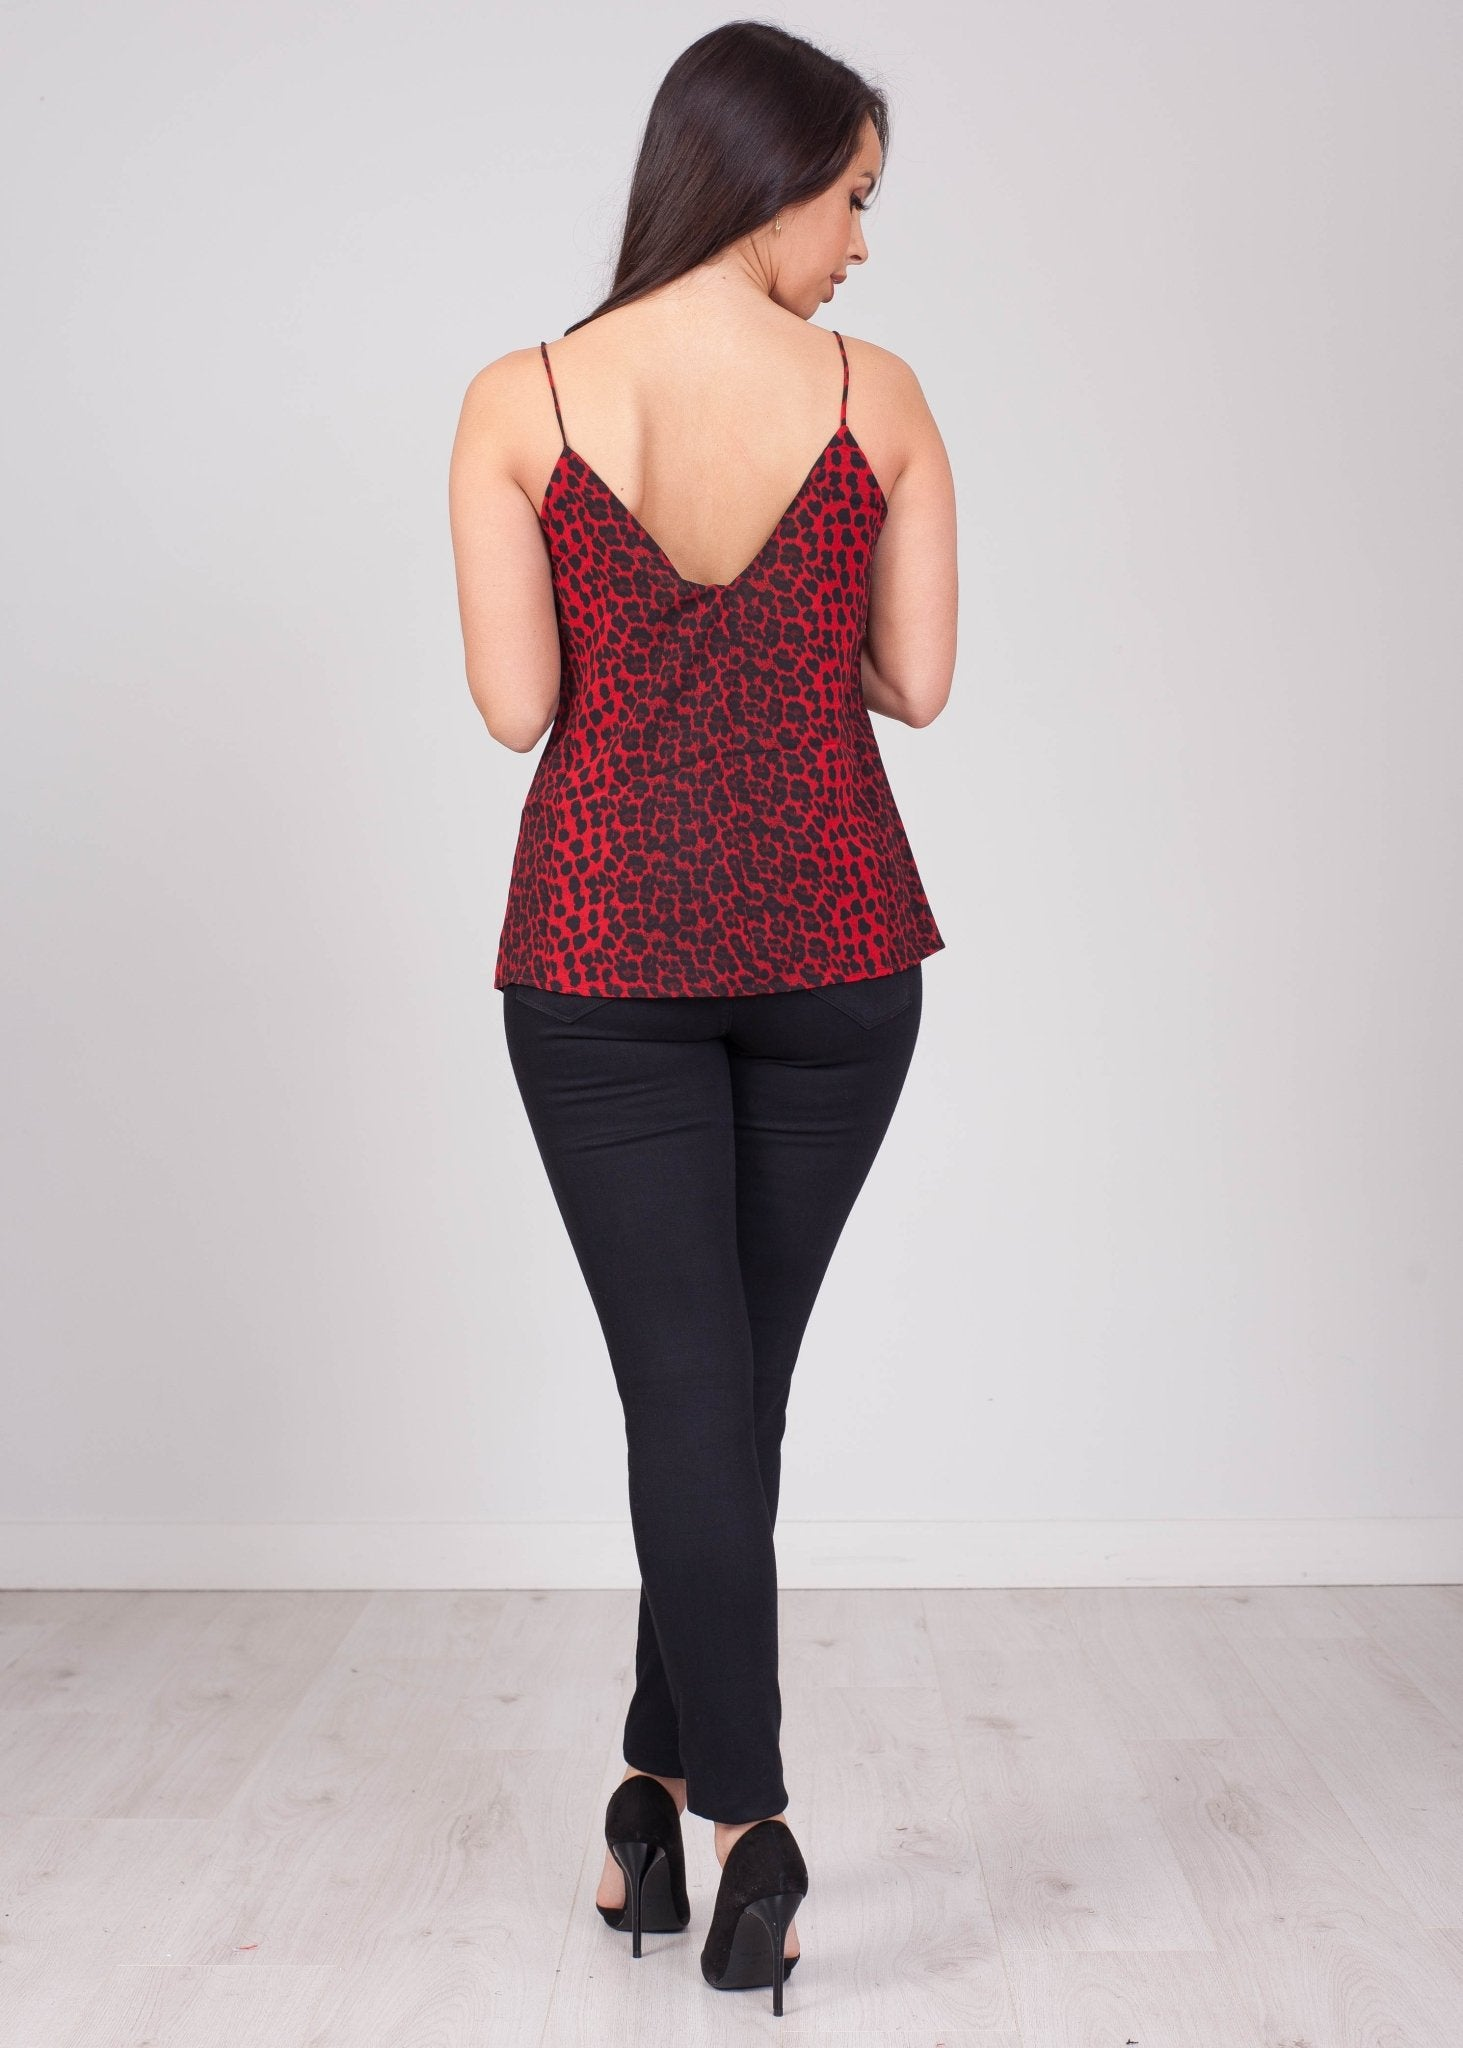 Emilia Red & Black Leopard Cami - The Walk in Wardrobe